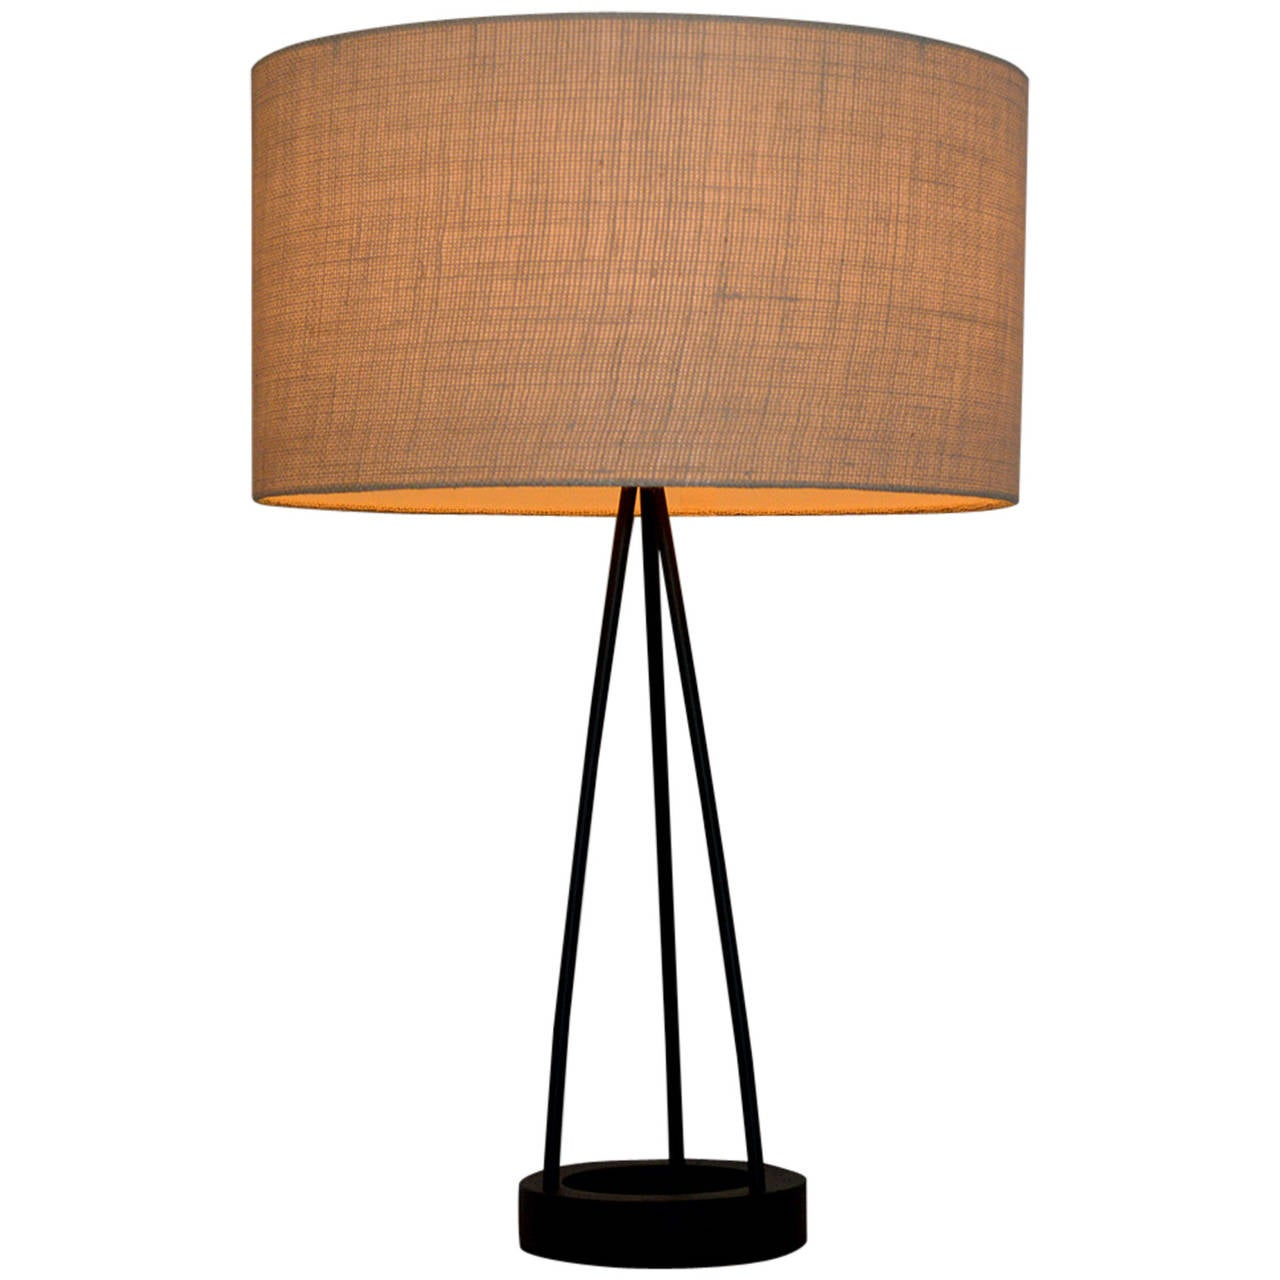 mid century modern robert bulmore table lamp for sale at 1stdibs. Black Bedroom Furniture Sets. Home Design Ideas